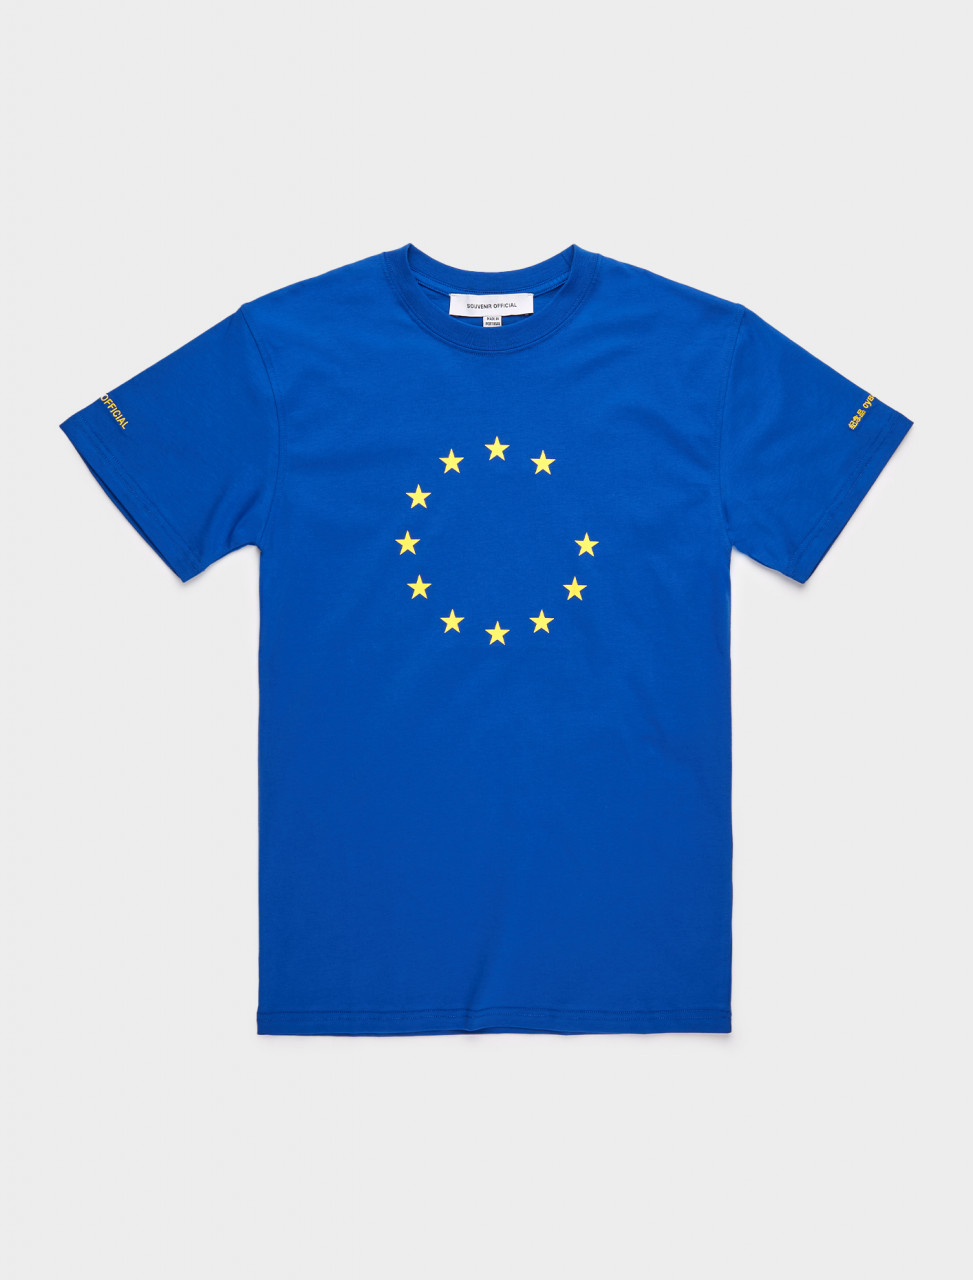 168-SOEU10-4-1 SOURVENIR EUNIFY 3.0 T SHIRT BLUE